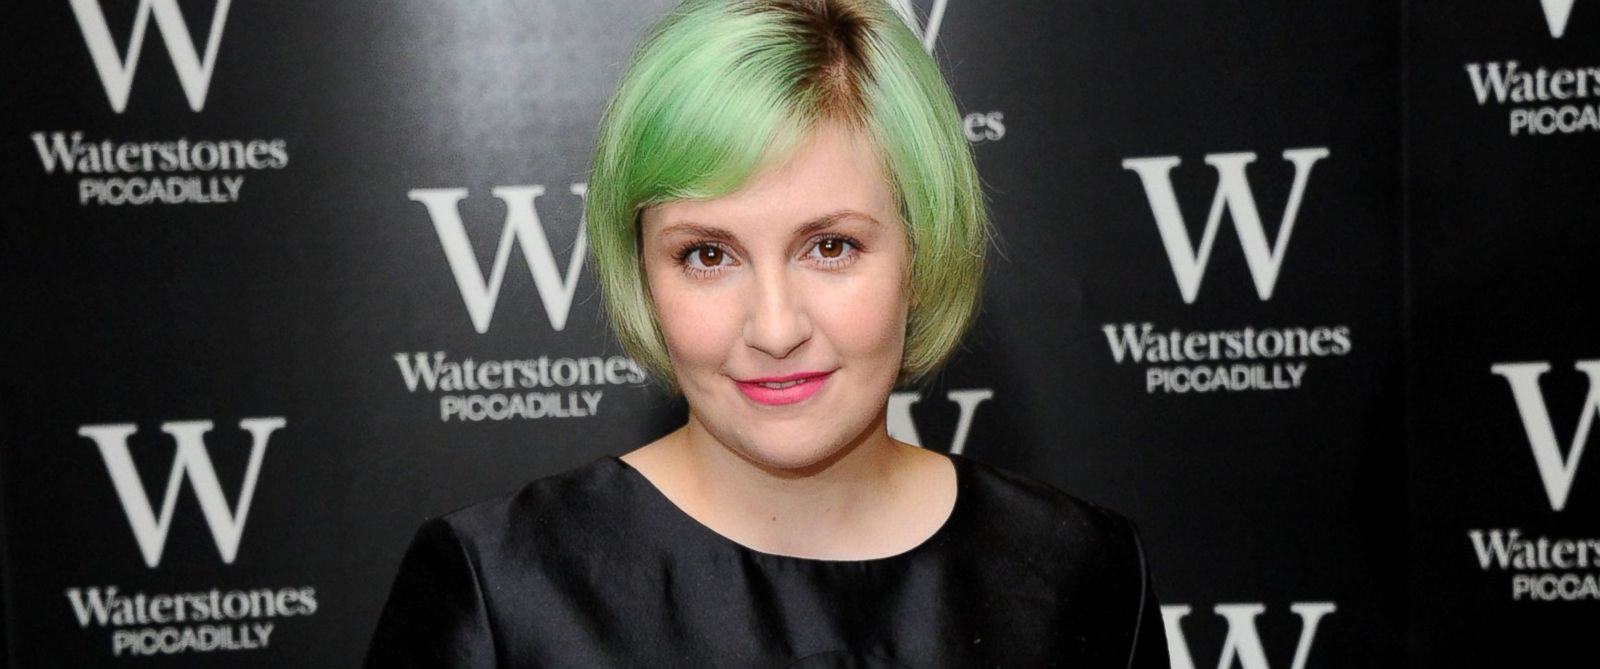 """PHOTO: Lena Dunham meets fans and signs copies of her book, """"Not That Kind of Girl,"""" at Waterstones, Piccadilly, Oct. 29, 2014, in London."""